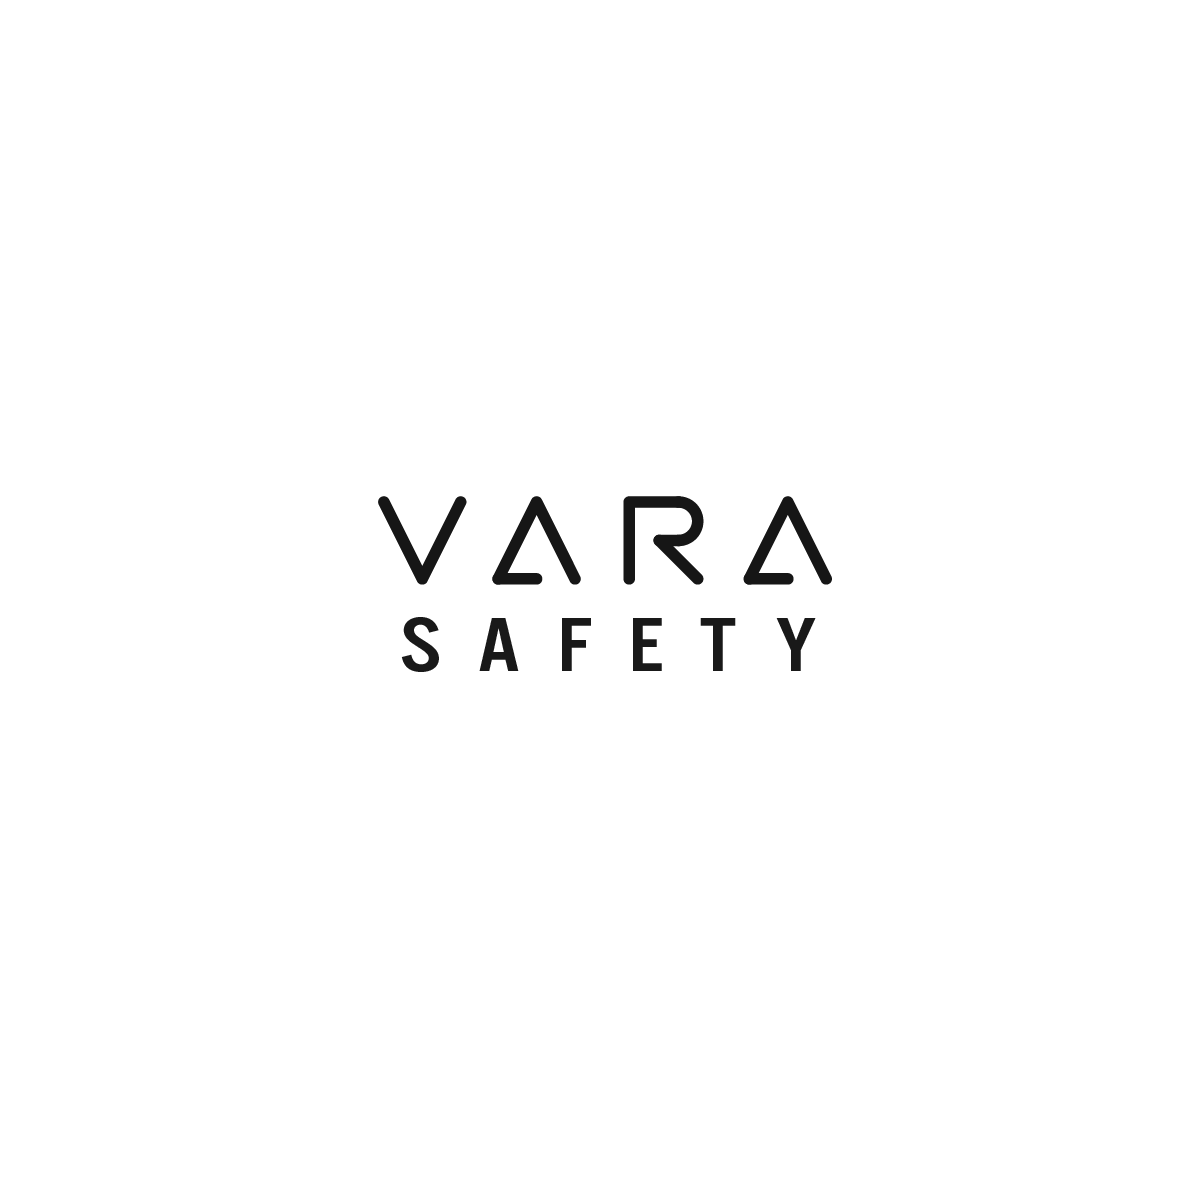 - In August 2017, Vara Corporation was established as a Delaware C Corporation. Timmy moved back to Upstate NY, where he had cultivated a network with the startup community as well as gun stores, law enforcement and civilian gun owners.The team obtained a shared manufacturing space through Tony Hynes (PVA) in Clifton Park.